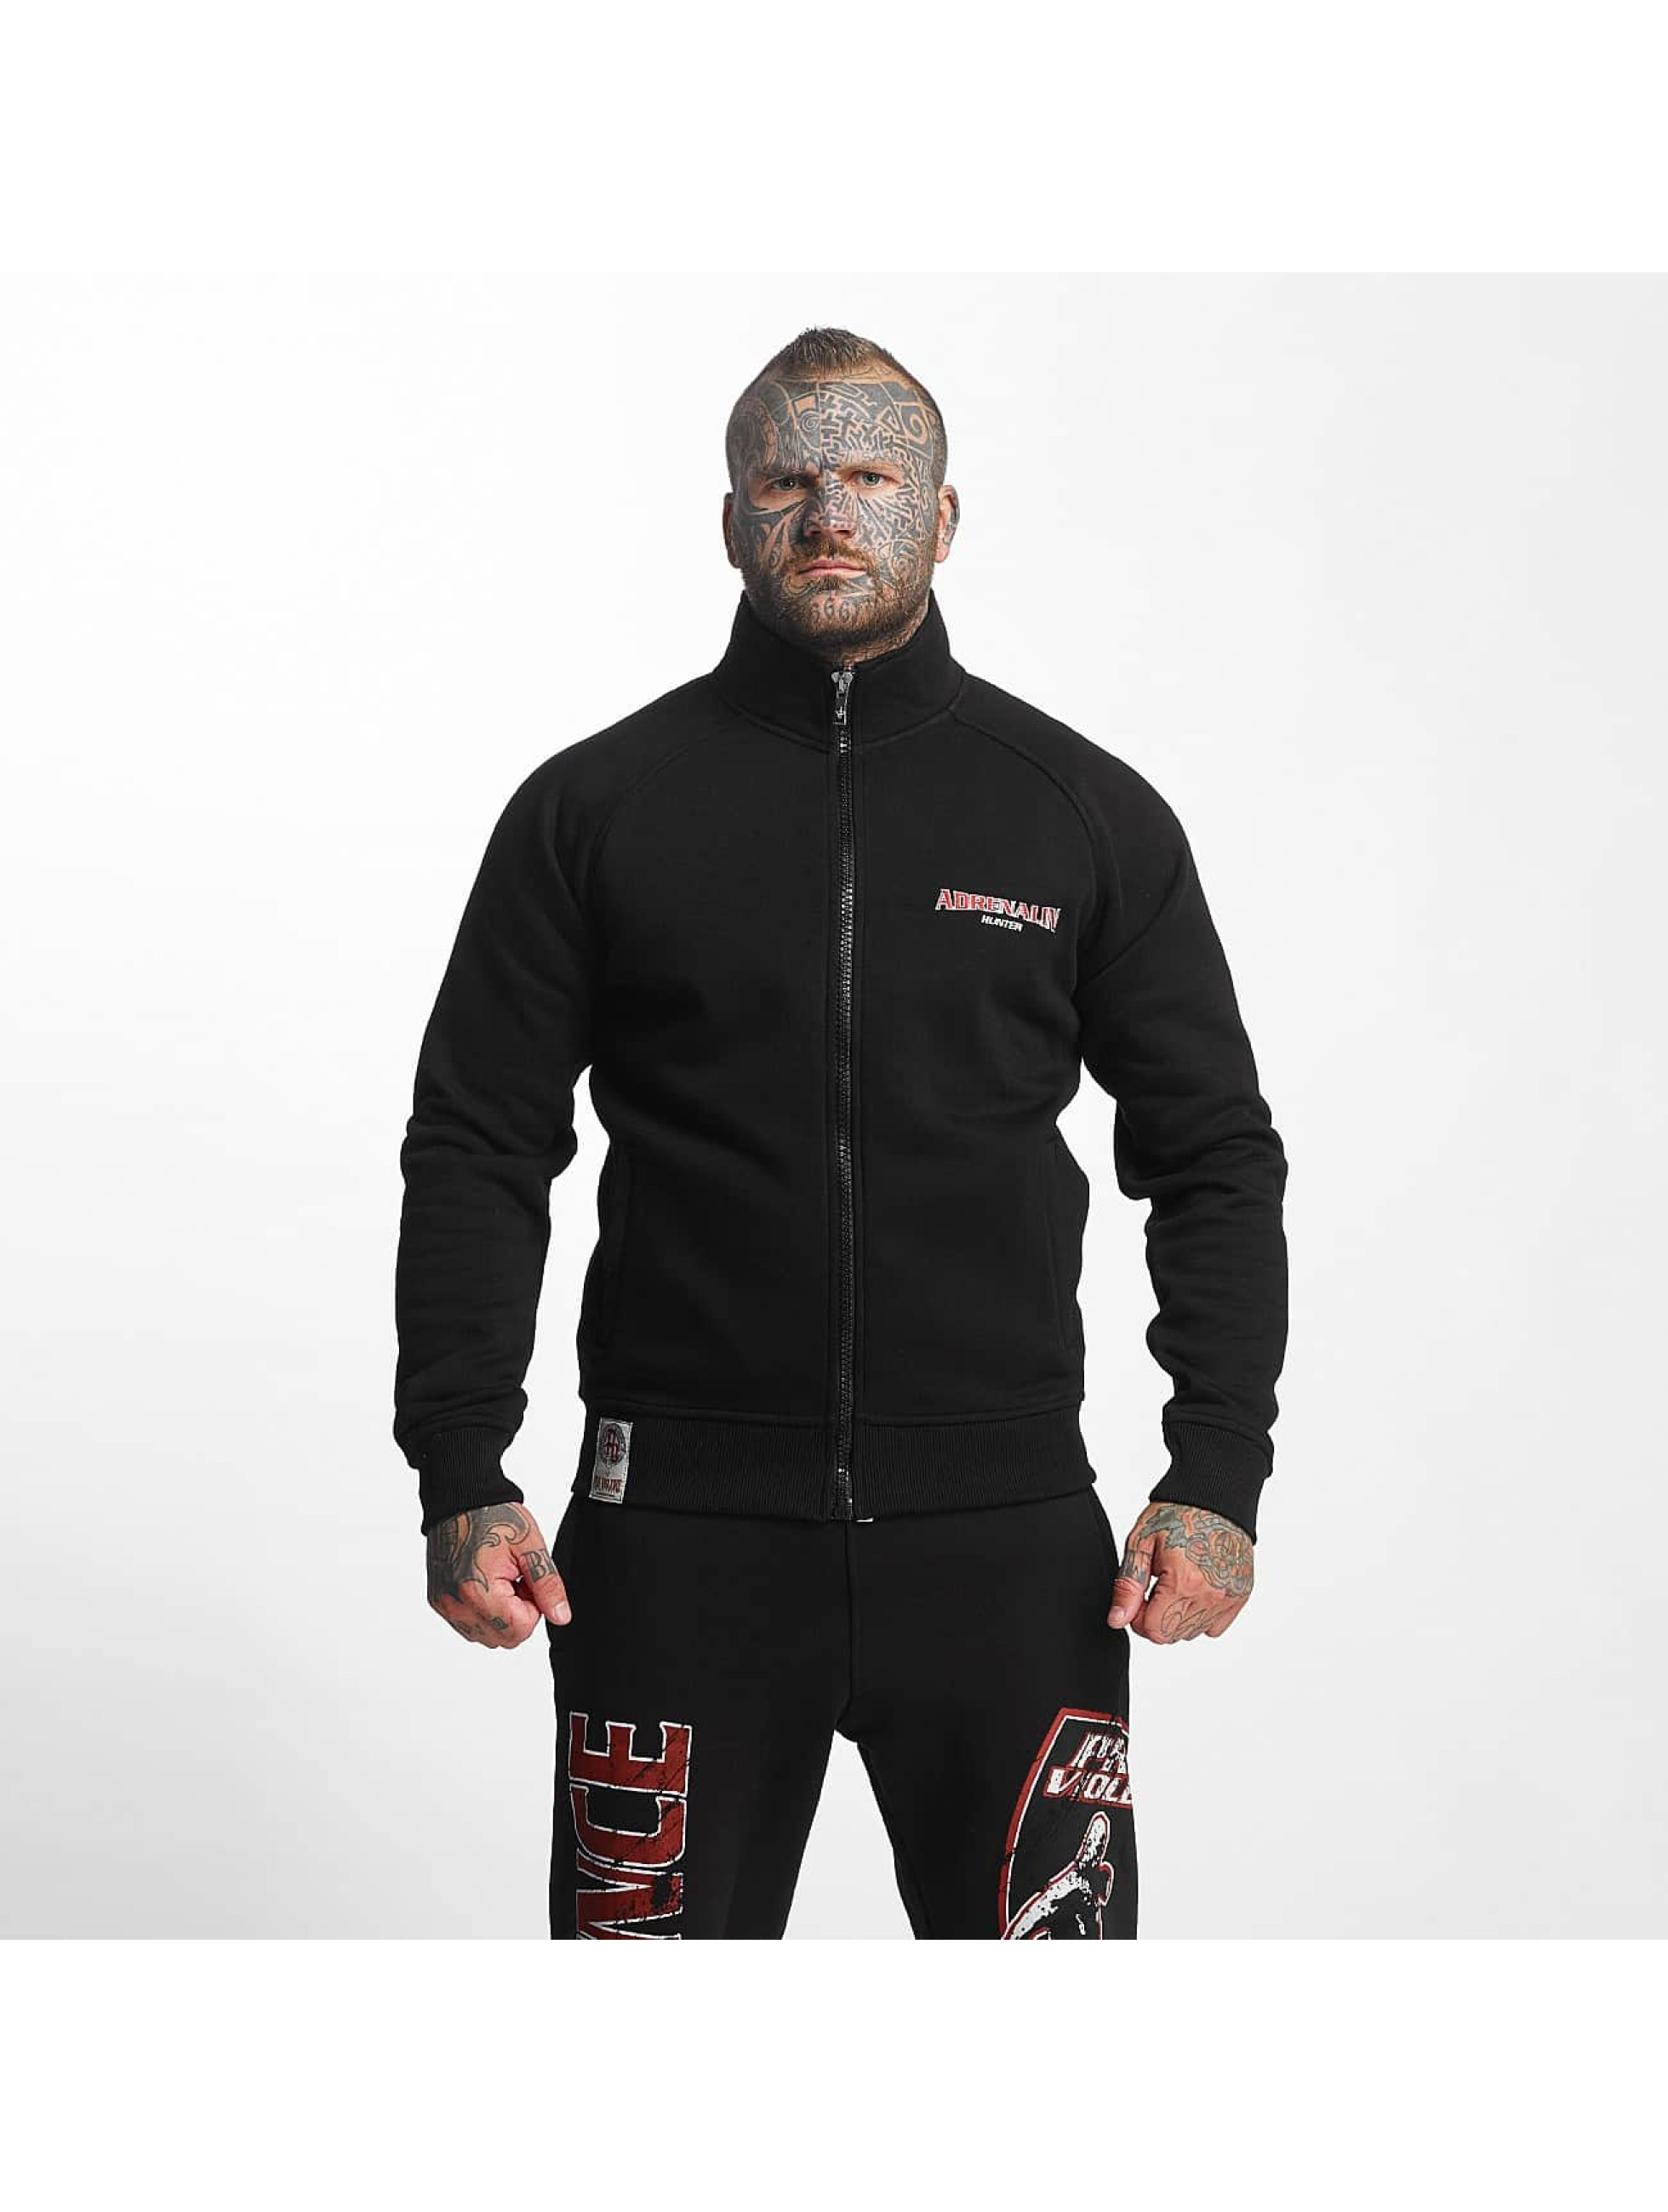 Pro Violence Streetwear Transitional Jackets Adrenlin Hunter svart